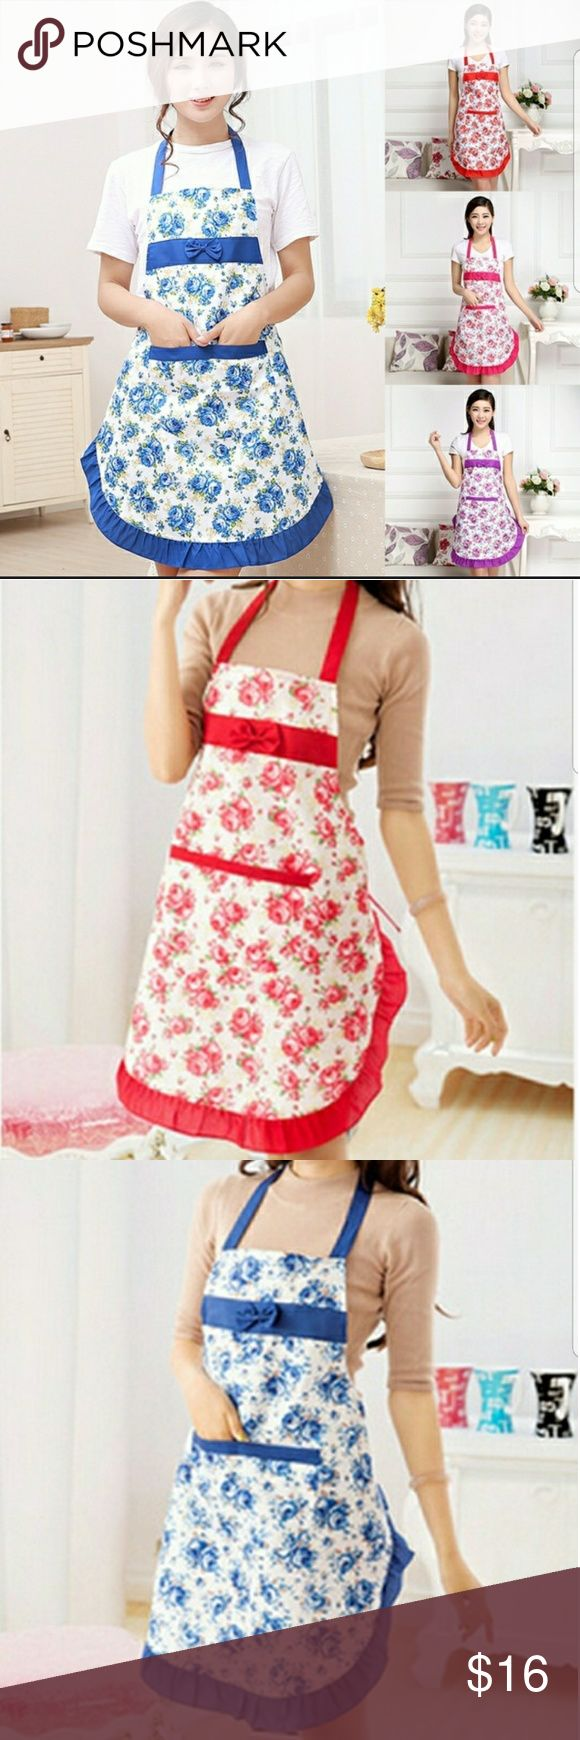 Red Apron and Colbolt Blue Apron Beautiful floral aprons in your choice of Colbolt Blue or Red. These have storage pockets in the front and a little bow. They are a nice size to protect your clothes. The material is flannel, cotton ,pollyester .  Free Size Other